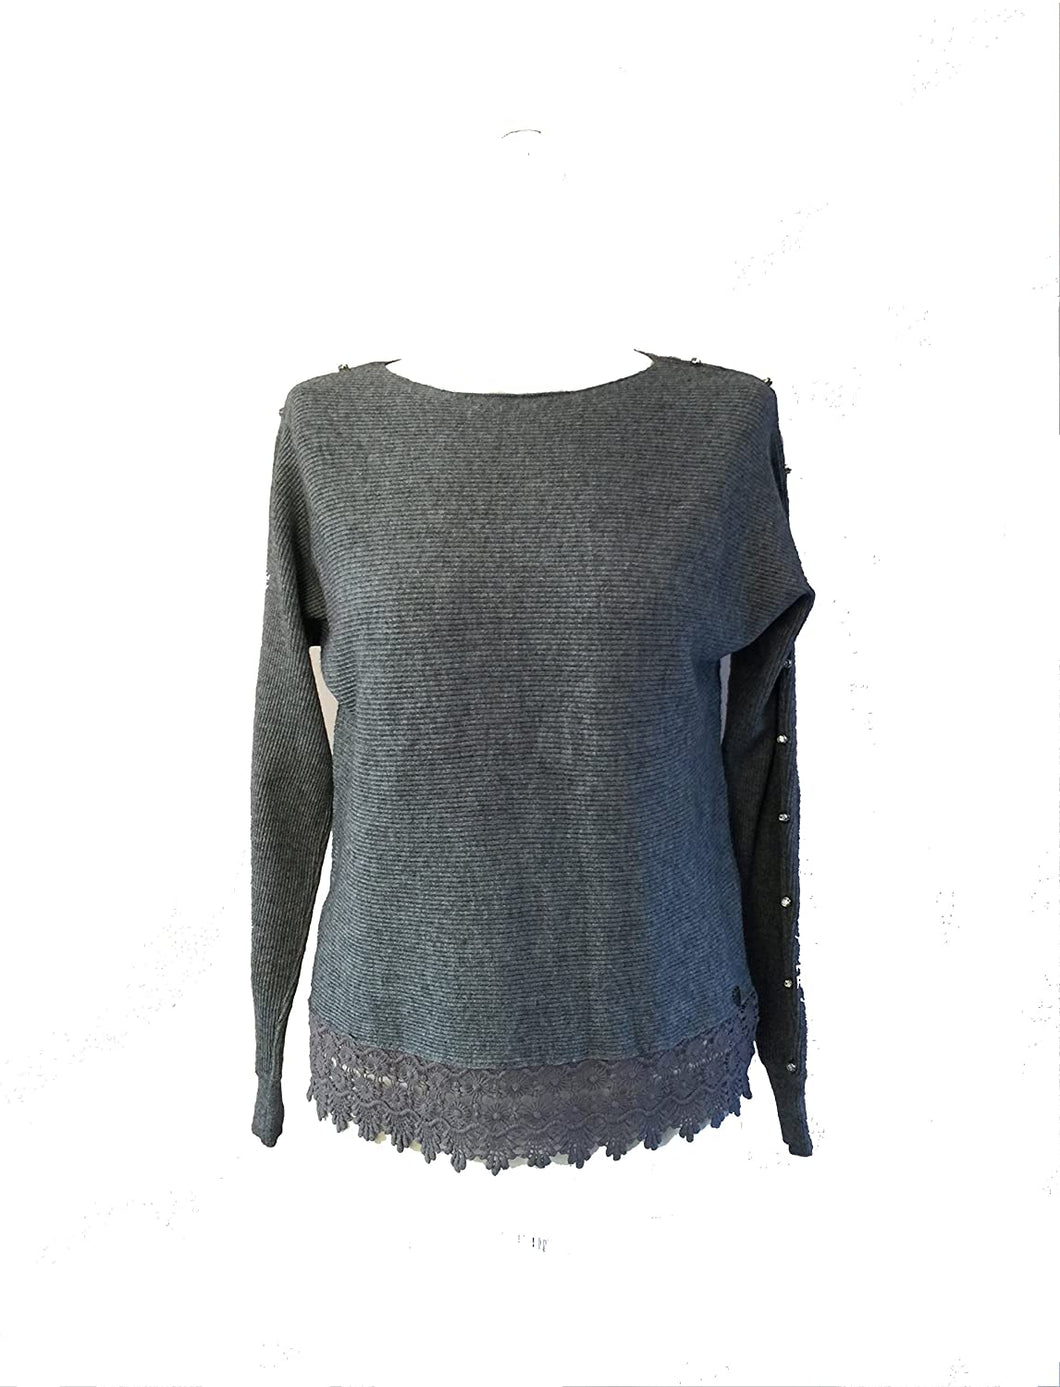 Pamper Yourself Now ltd Grey Jumper with Diamante arms and lace Trim at Front. Made in Italy (AA43)